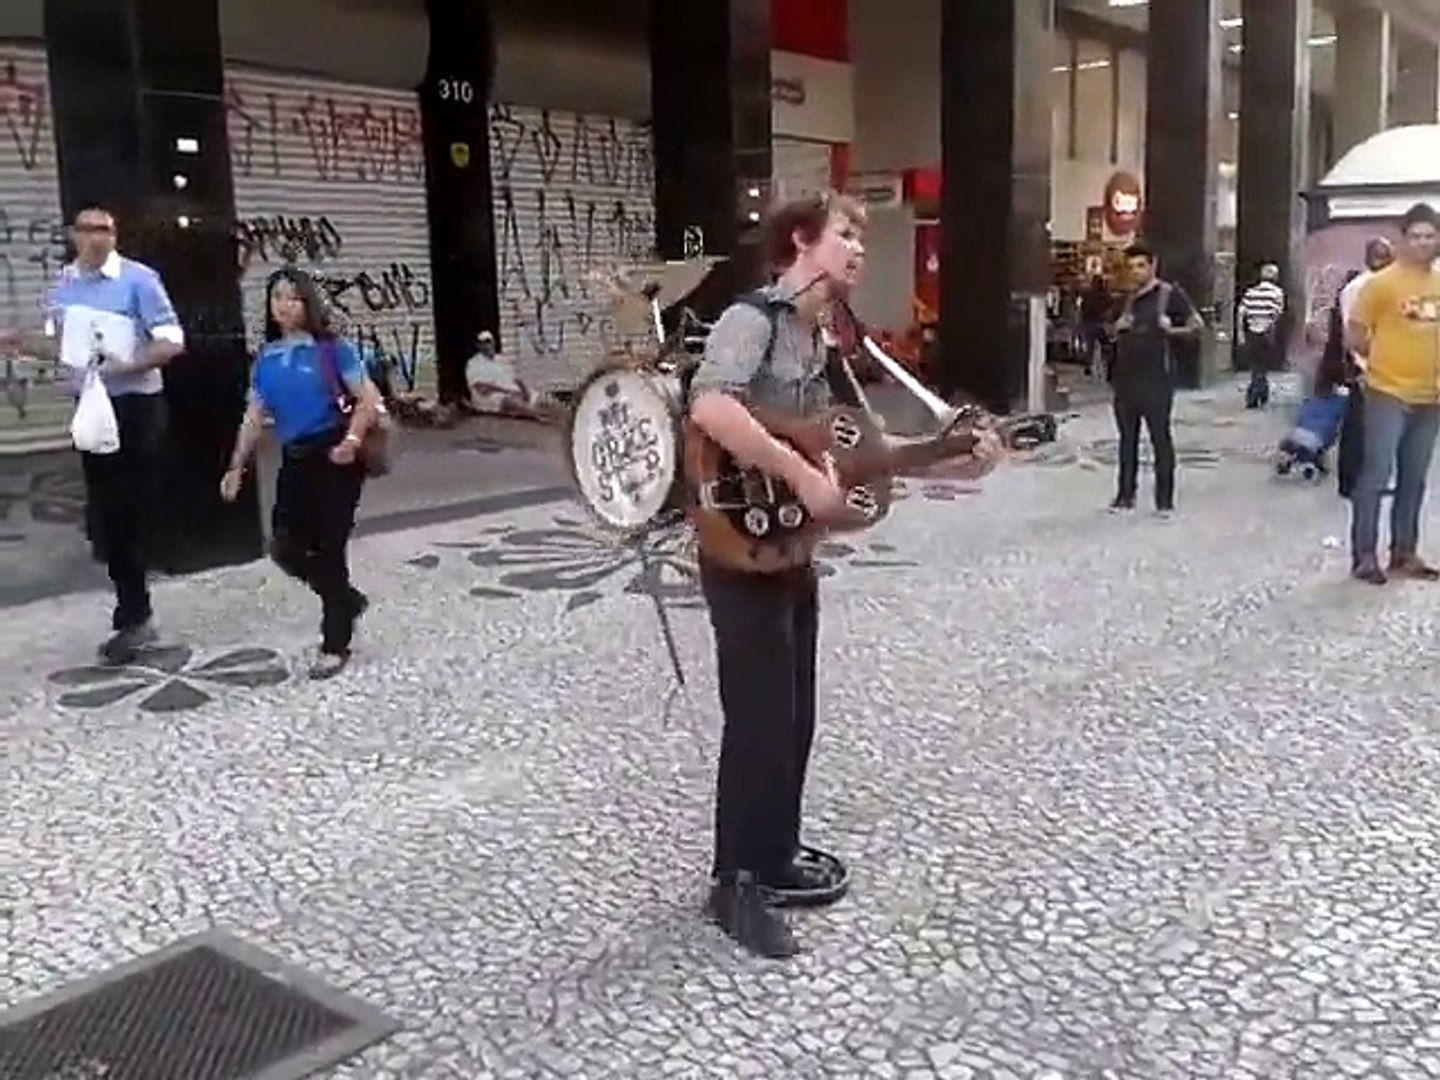 Incredible street performer : Mr Orkester is a talented musician and singer